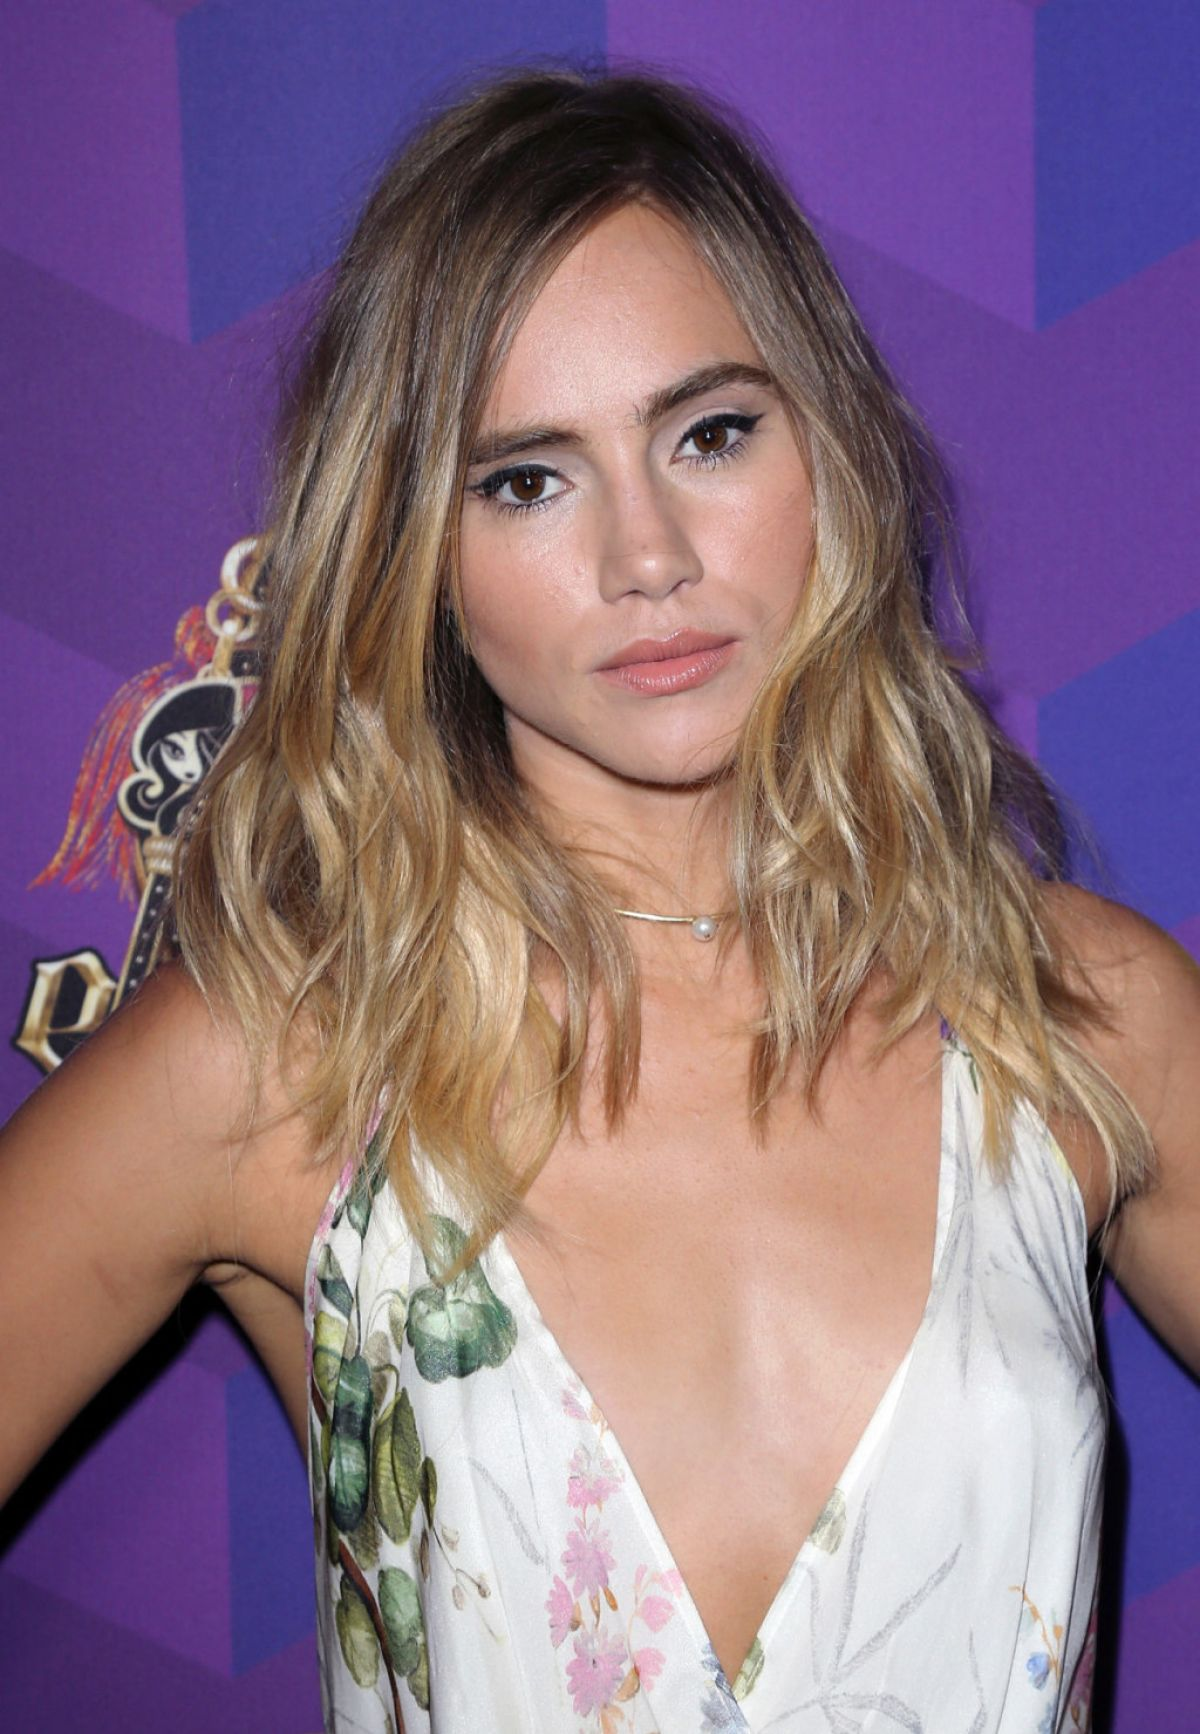 SUKI WATERHOUSE at Just Jared's Way To Wonderland Party in West Hollywood